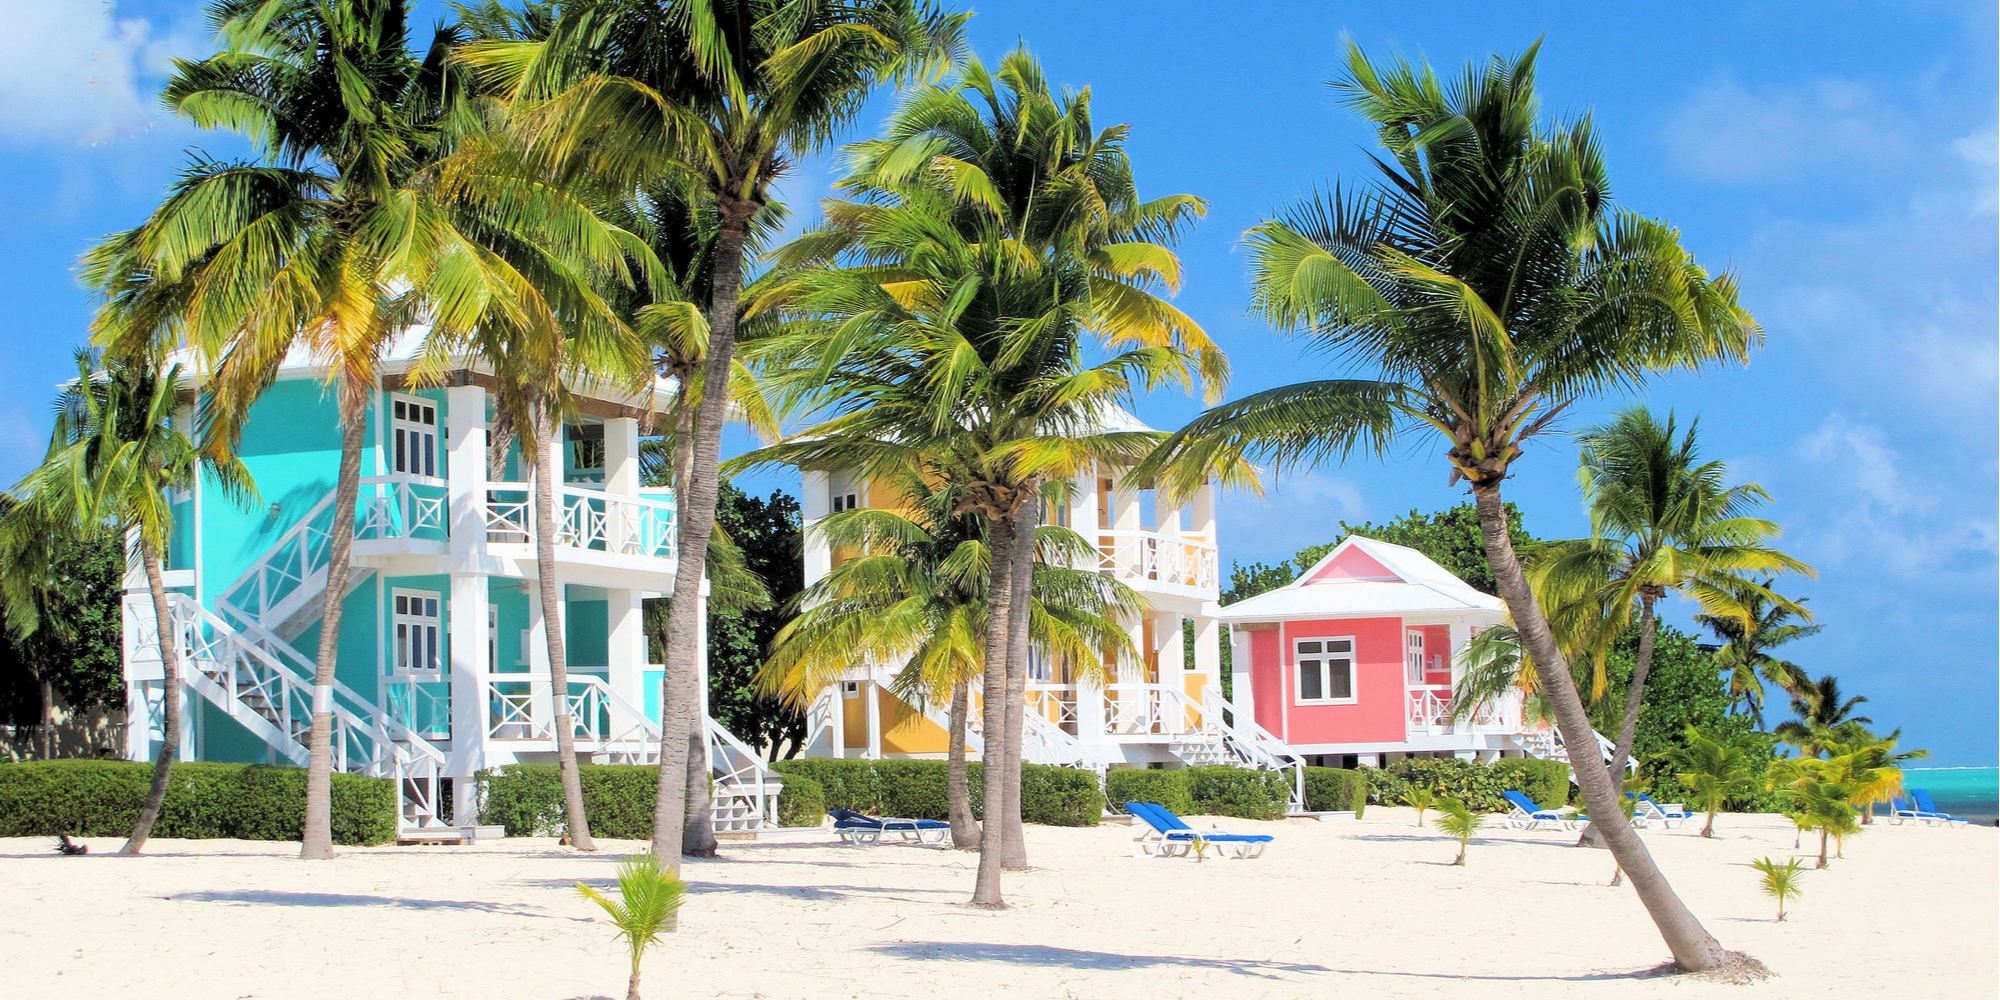 Have you ever visited the Cayman Islands? Talk about the perfect place. Nice weather, not too expensive, and not too far away.